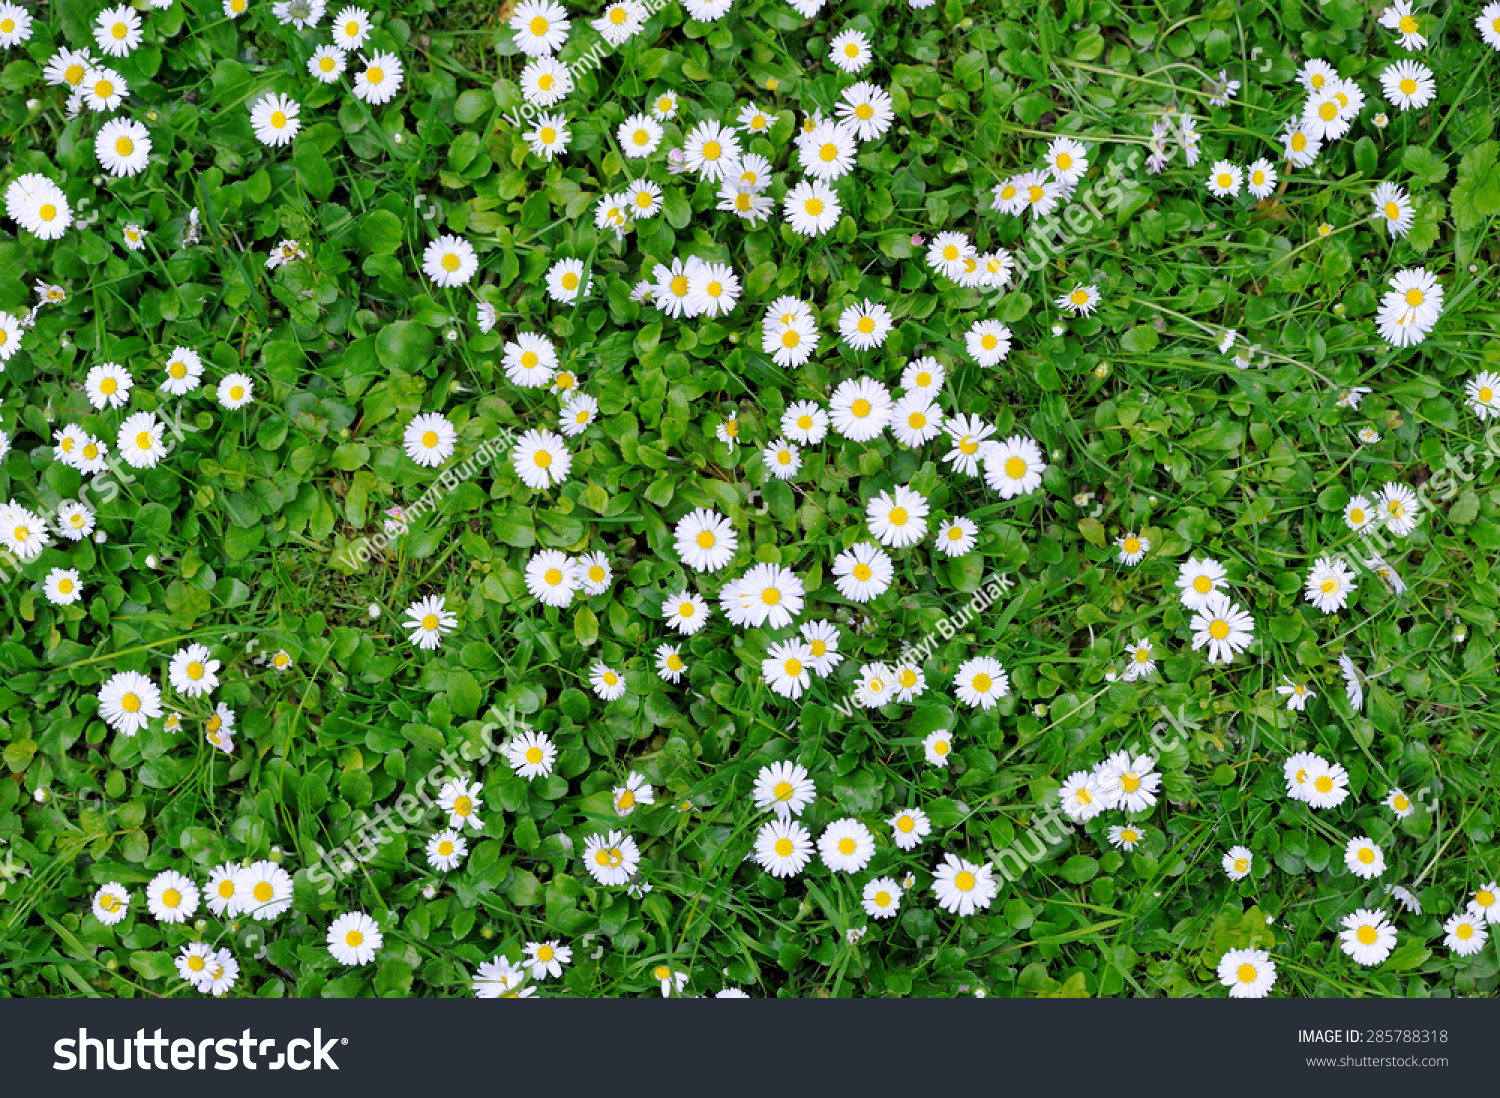 Spring green grass texture white small stock photo royalty free spring green grass texture with white small flowers mightylinksfo Choice Image